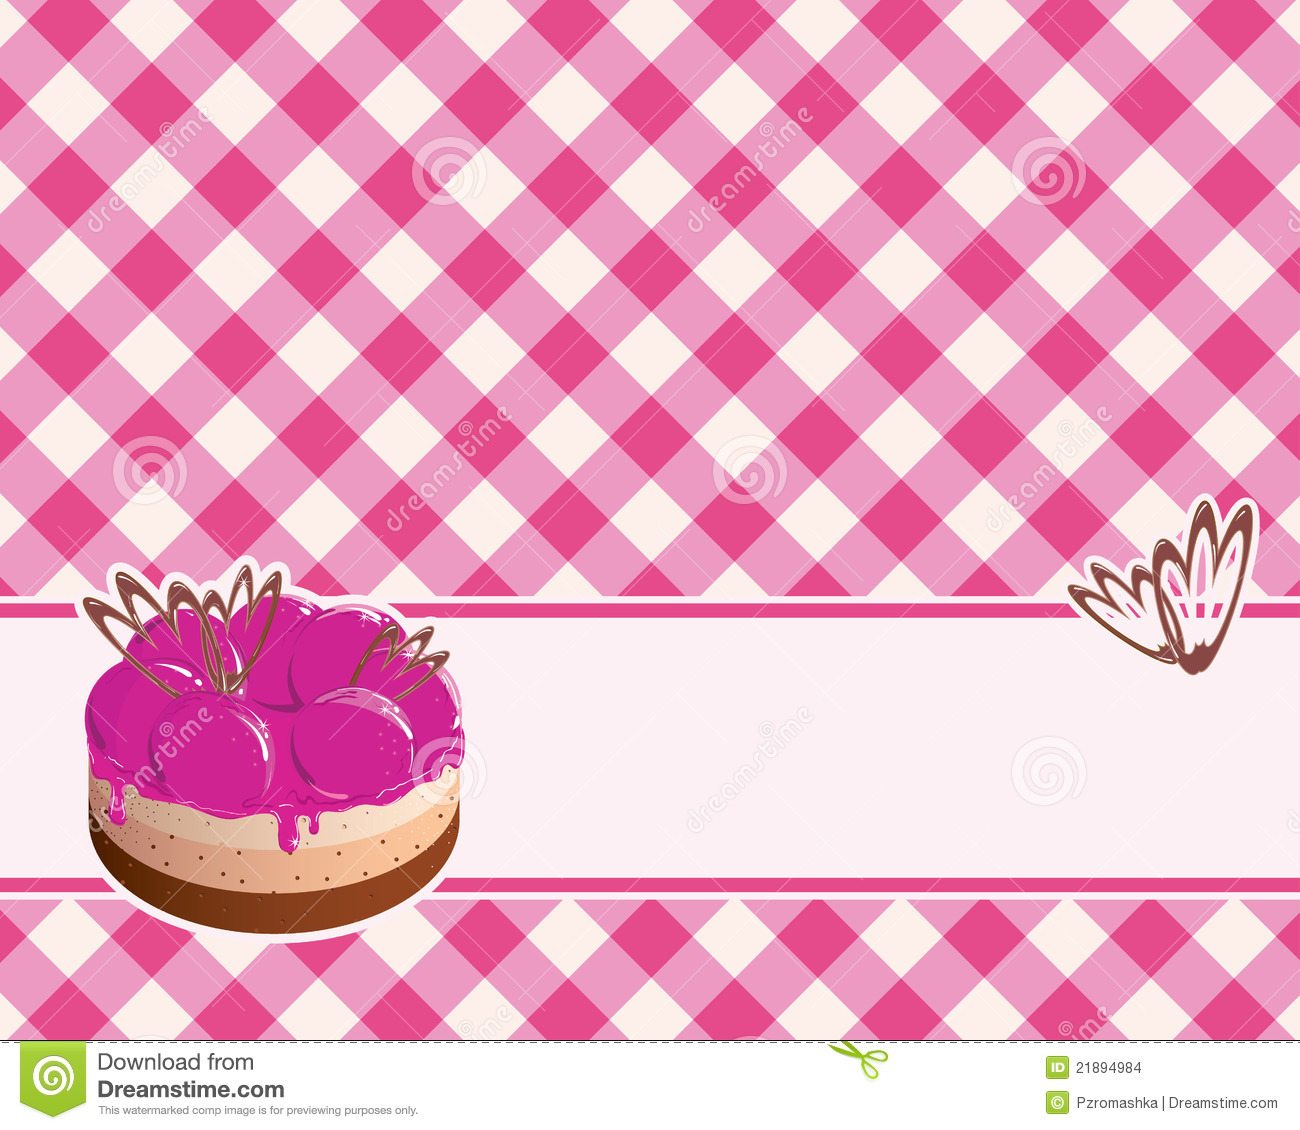 Clipart Pink Tilted Tiara And Number 47 besides Stock Images Checkered Background Cake Image21894984 moreover Happy Birthday Cartoon besides Stock Illustration Number Two Monster Cartoon Illustration Smiling Happy Image47826342 further Blaze And The Monster Machine Edible Birthday Cake Topper Or Cupcake Topper Decor. on old cartoon birthday cake